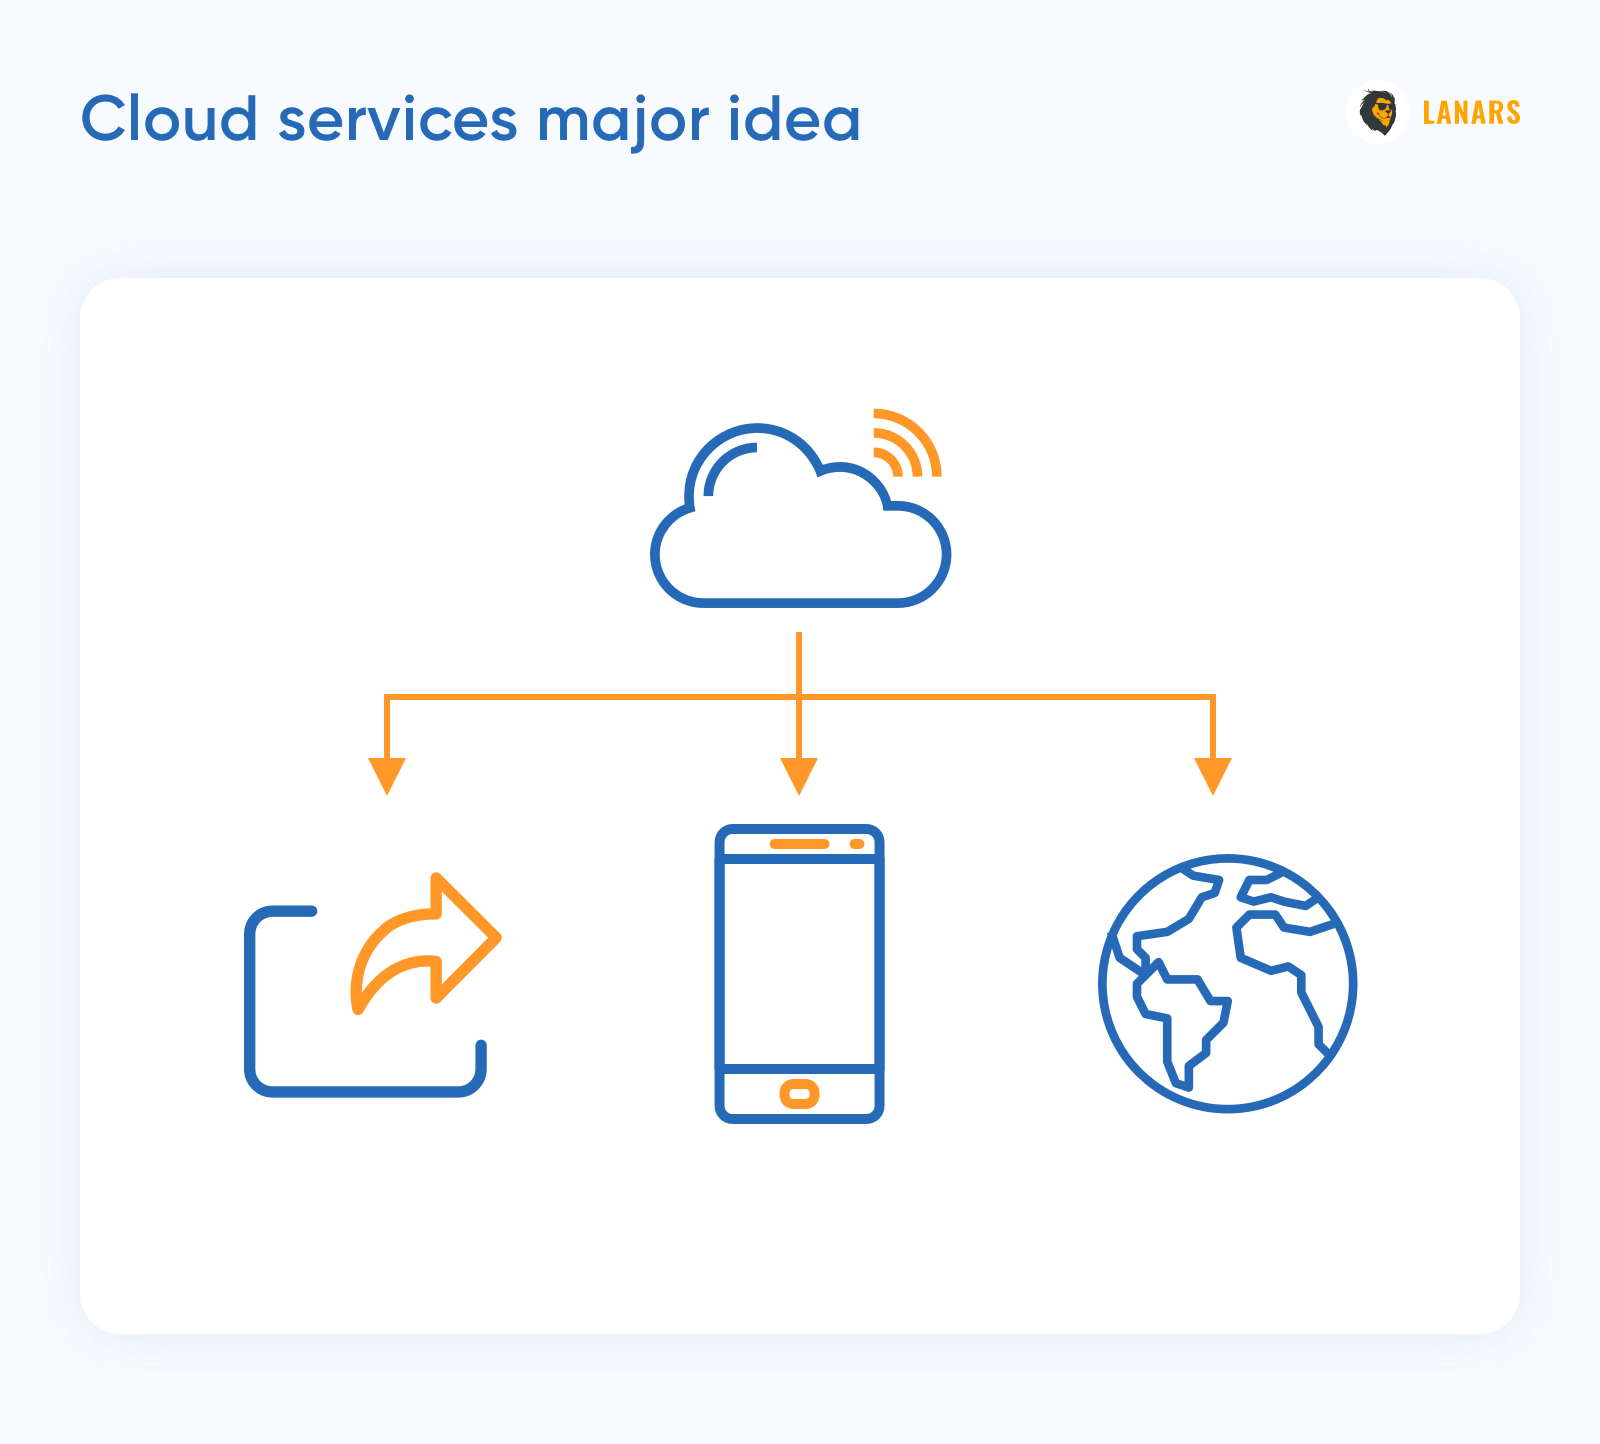 Cloud services major idea